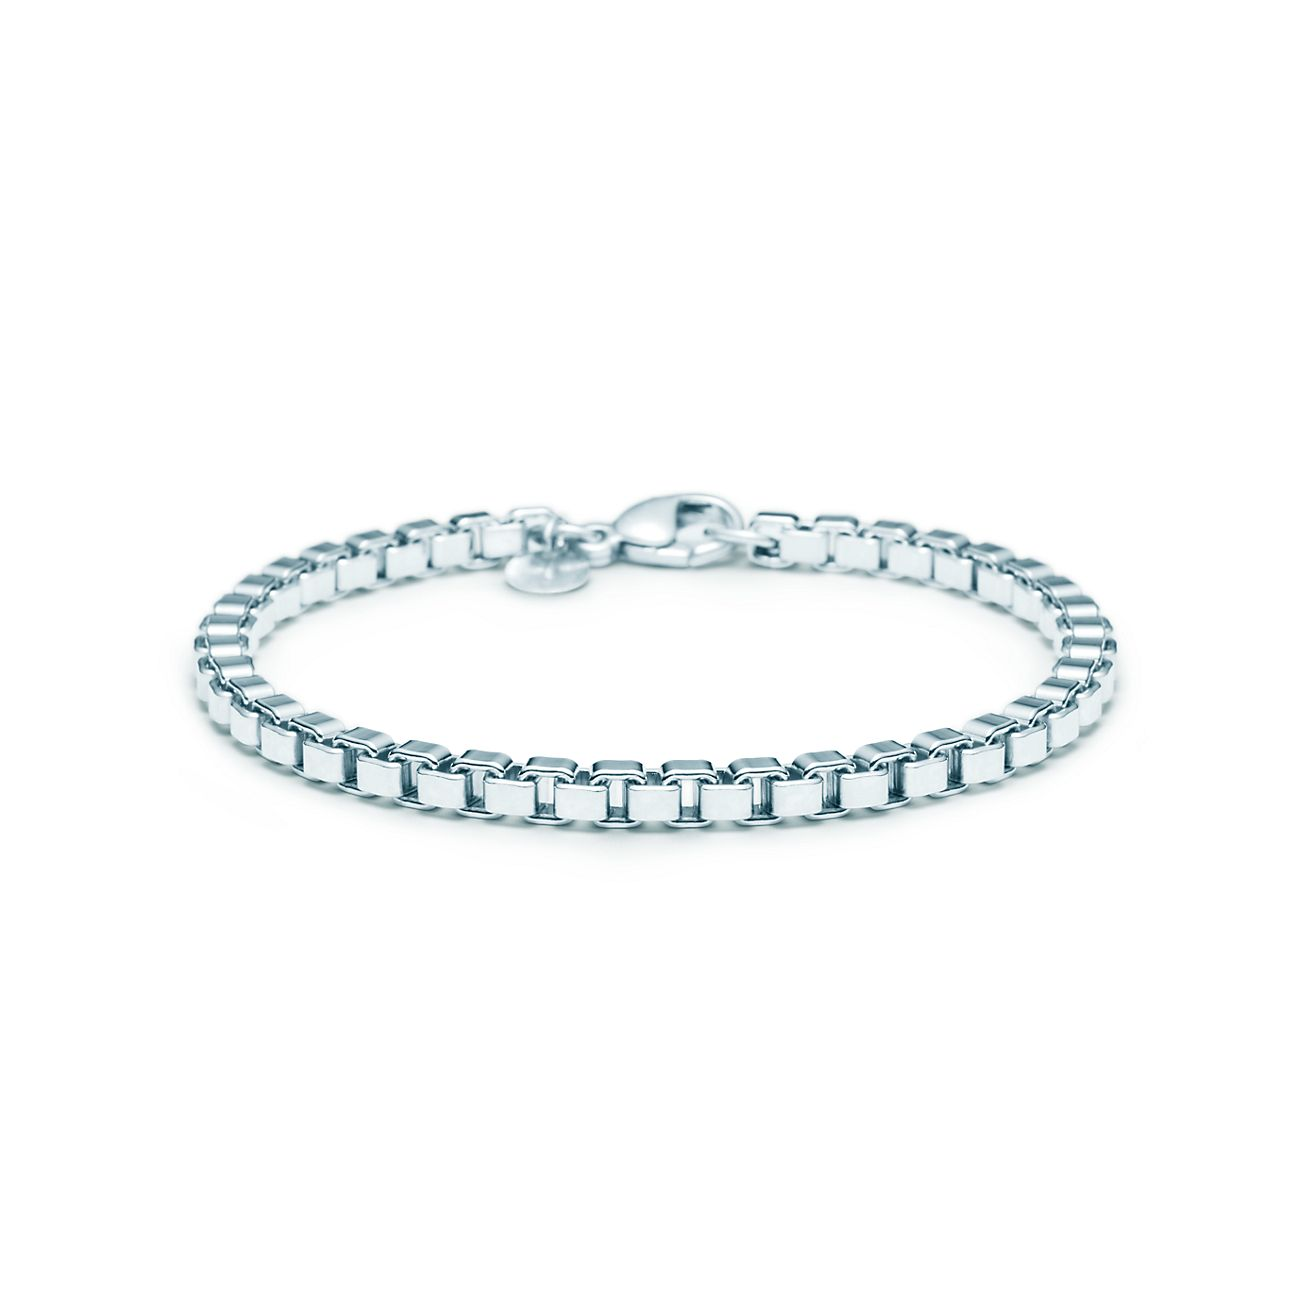 Venetian Link ID mens bracelet in sterling silver - Size 7.25 IN Tiffany & Co. JmUyTMg3G7